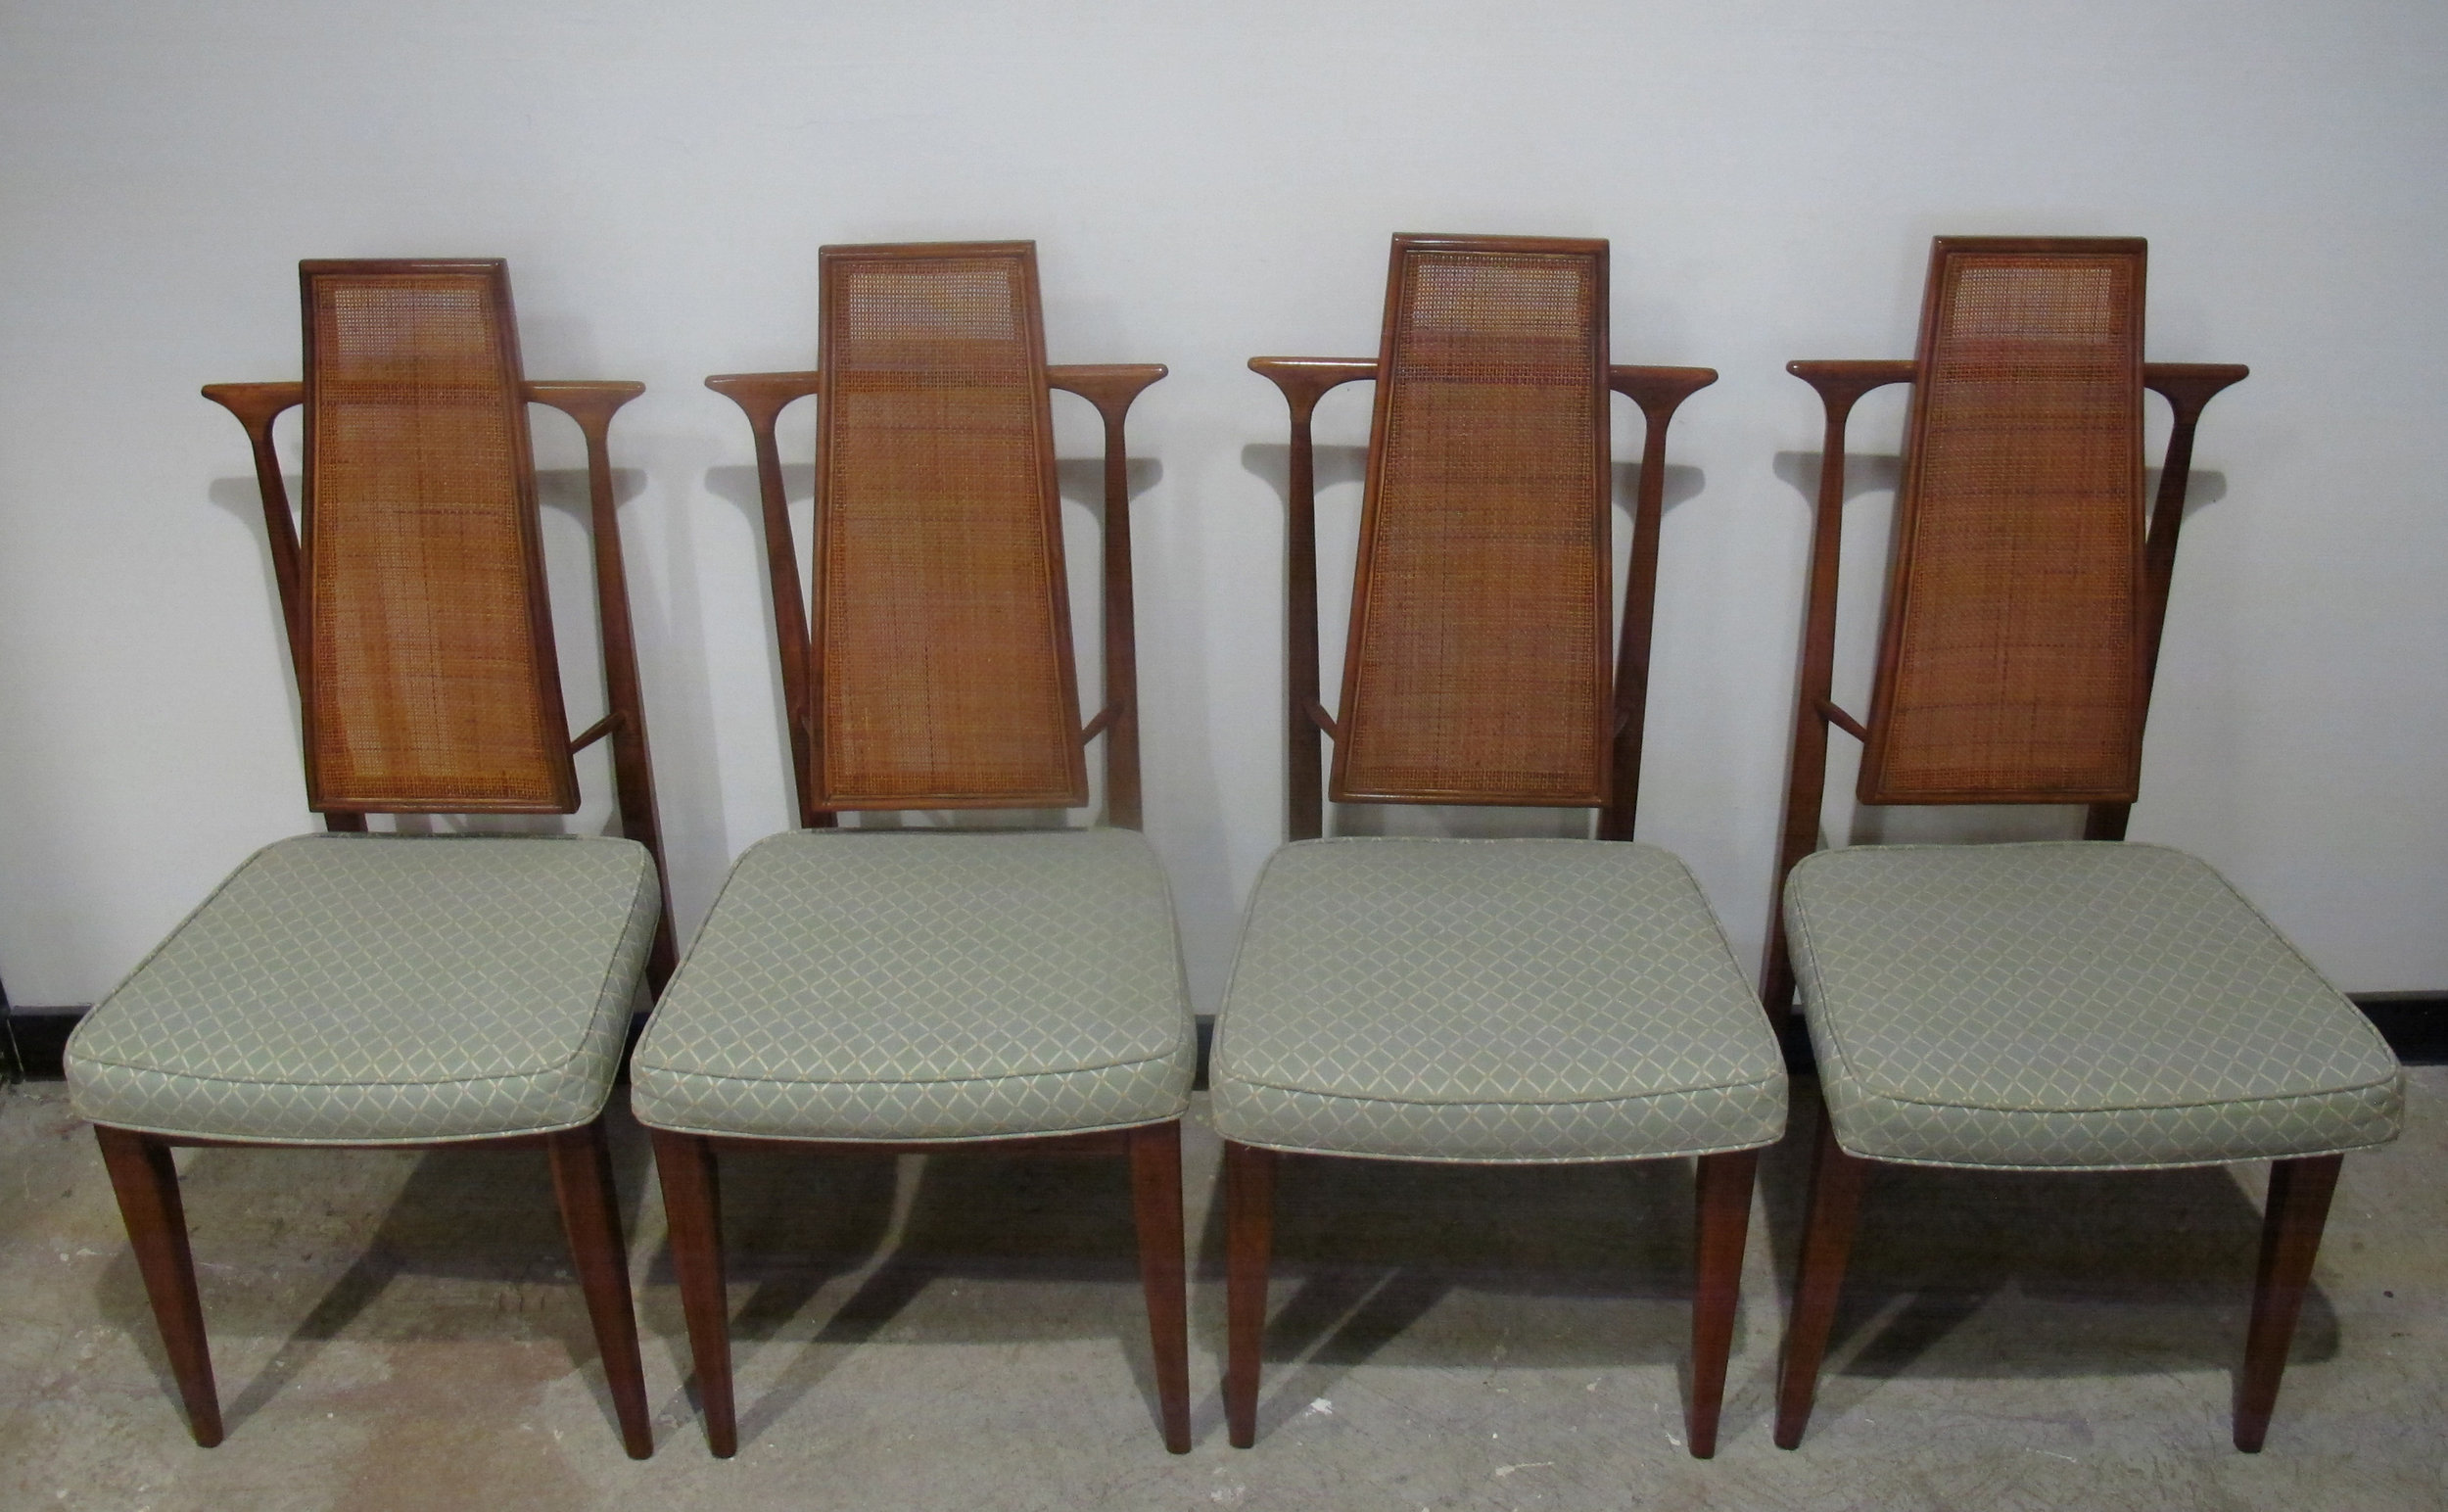 SET OF KAGAN STYLE HIGH BACK WALNUT & CANE DINING CHAIRS